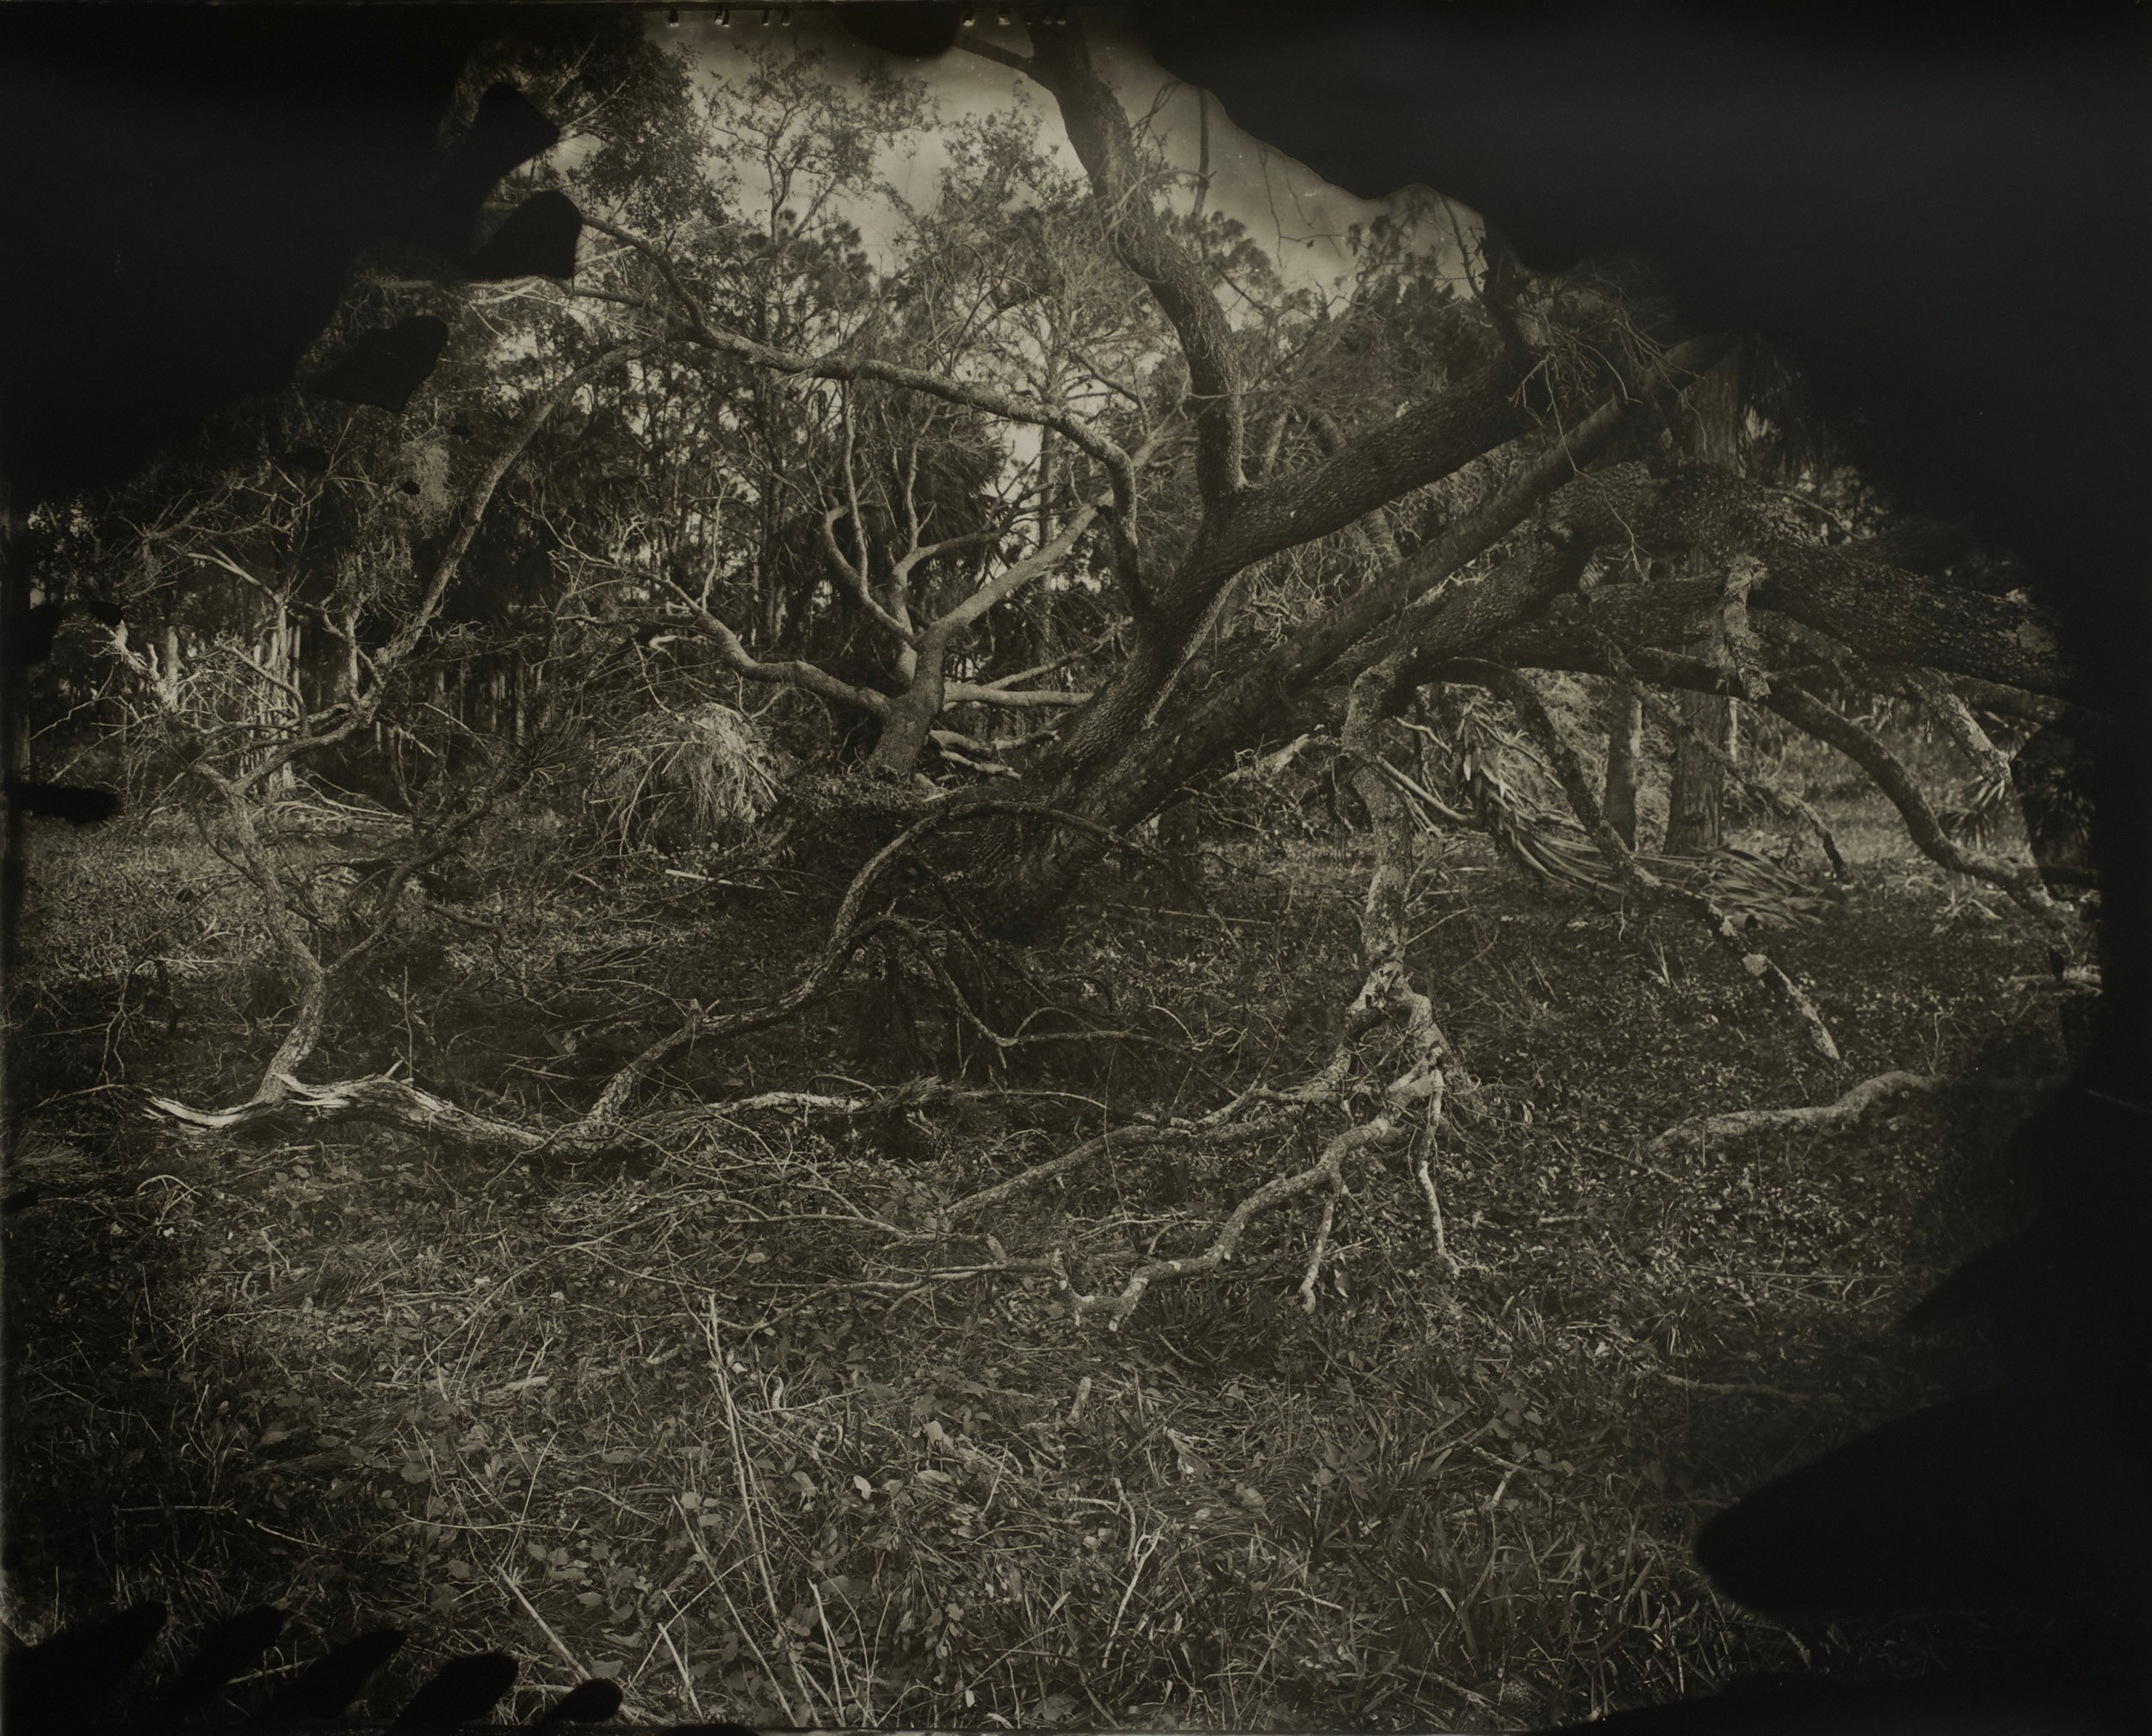 After The Storm, 37 in. x 30 in., collodian negative hand printed on Fomatone paper, 2018. #2018-9.jpg